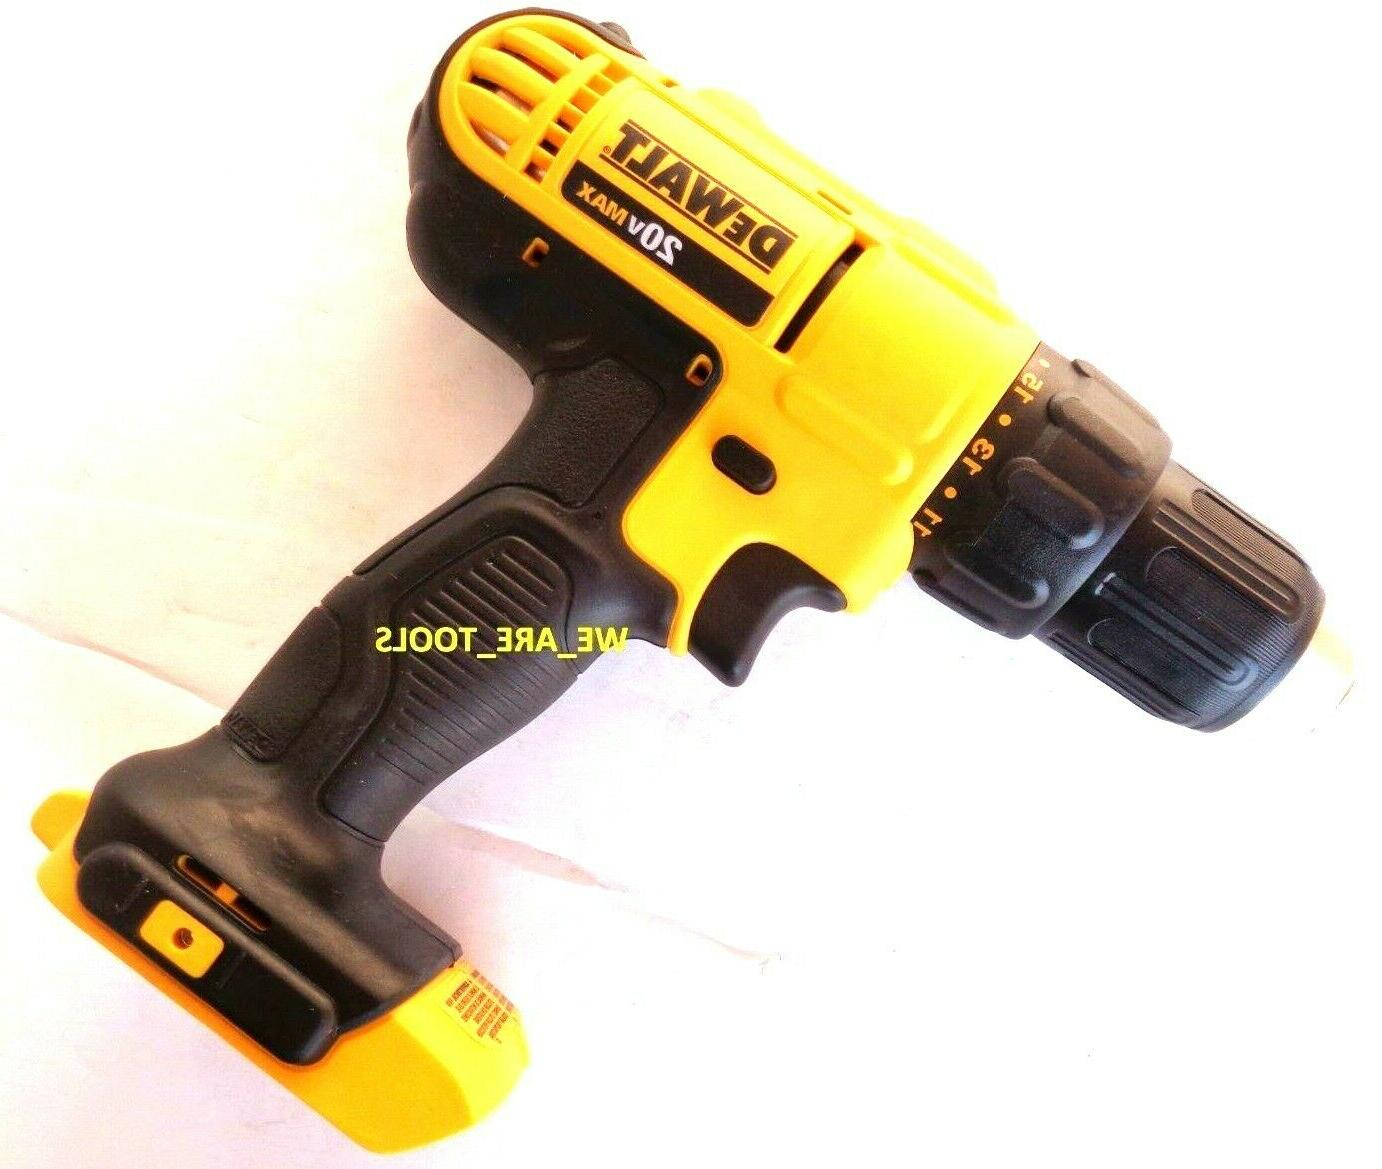 New DCD771 Compact Drill MAX Tool 20